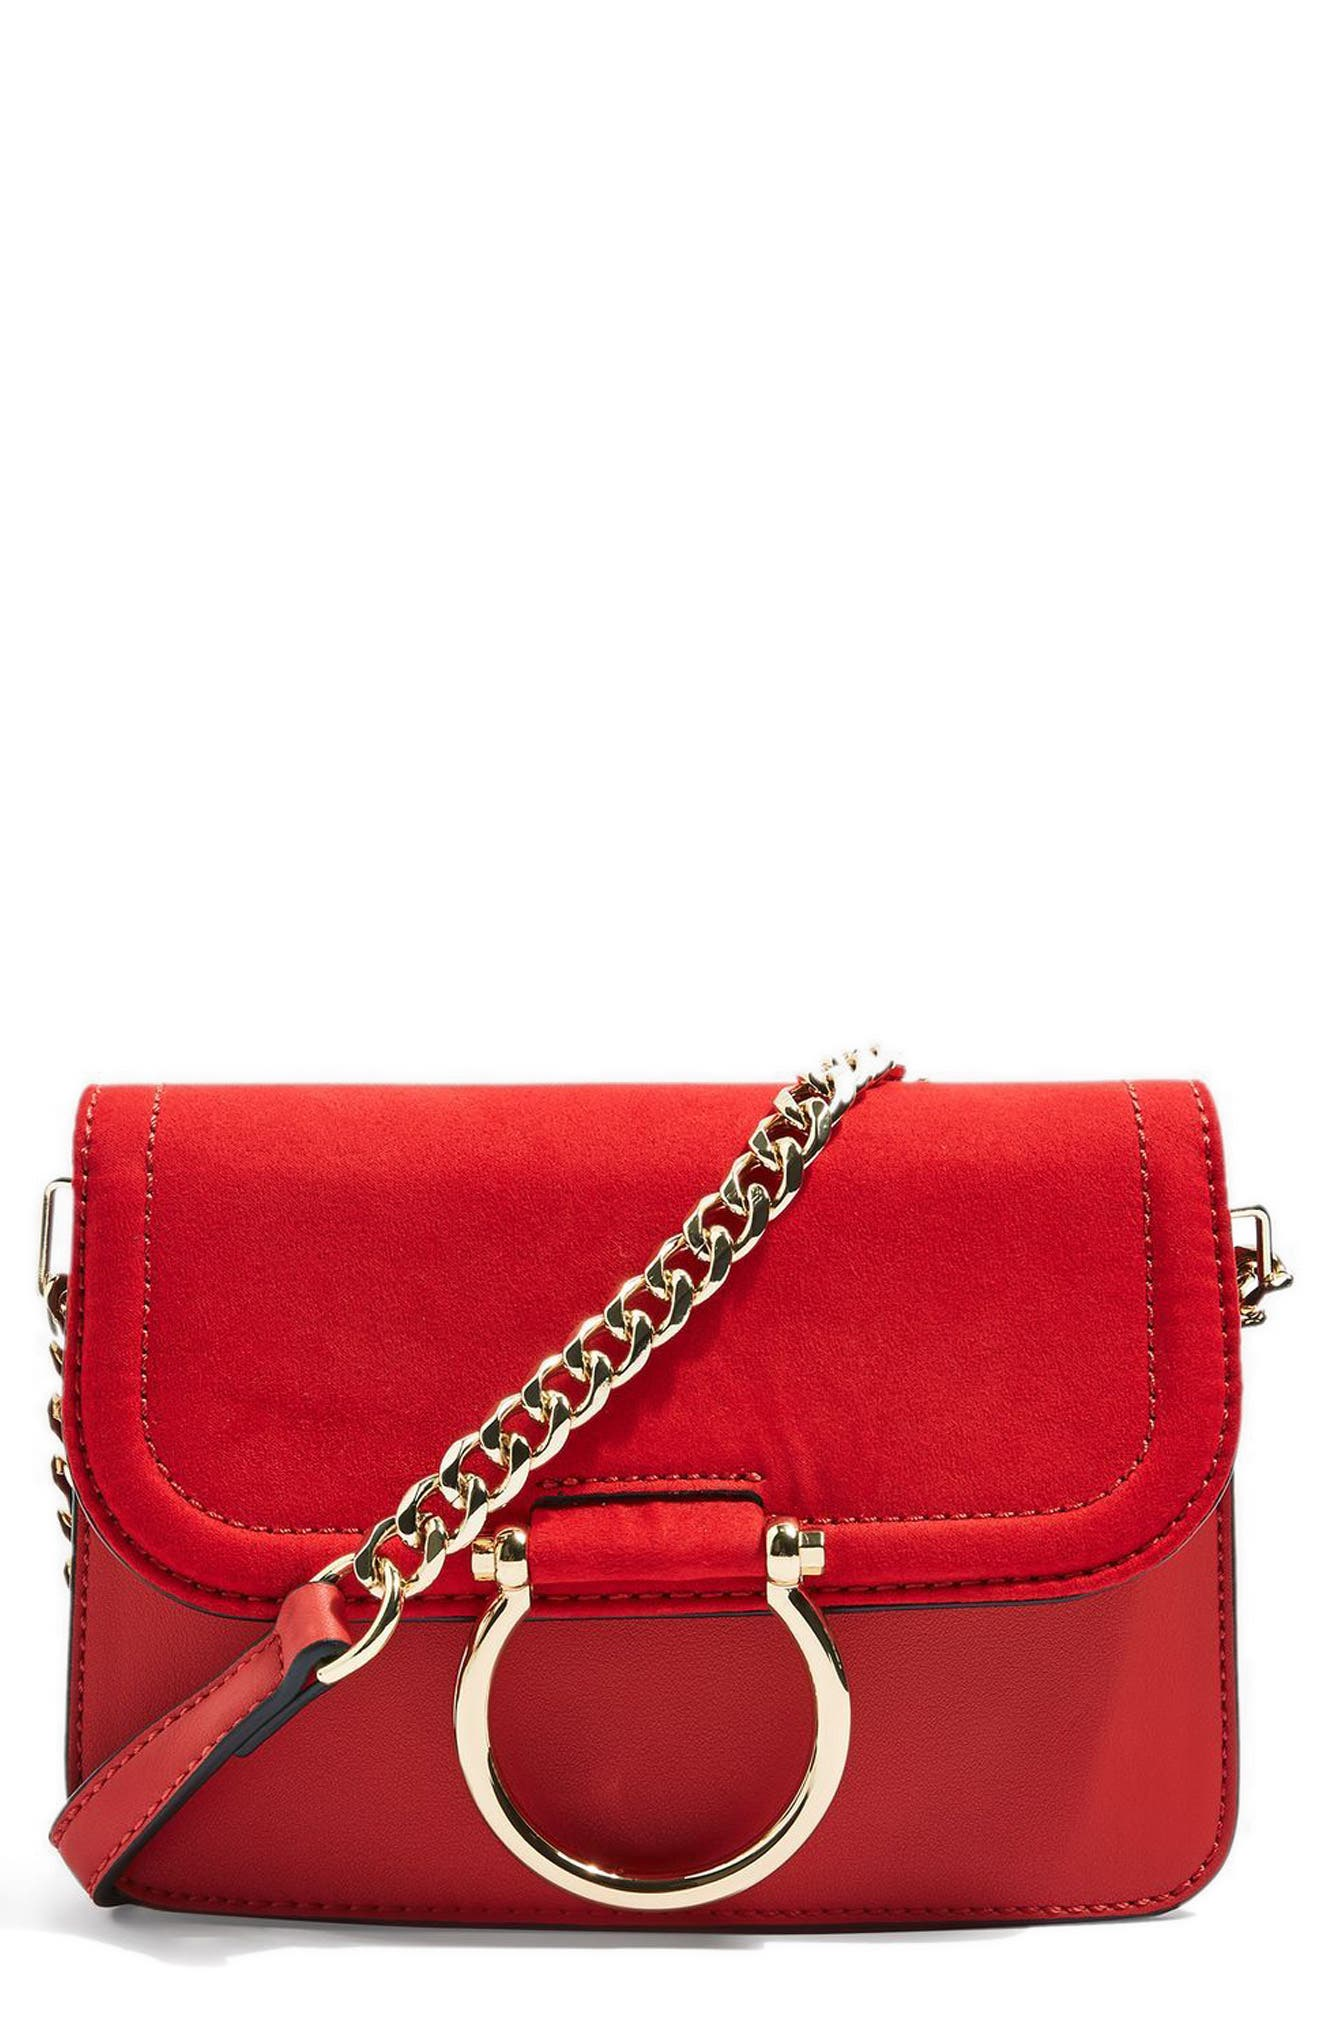 Topshop Remy Trophy Faux Leather Crossbody Bag